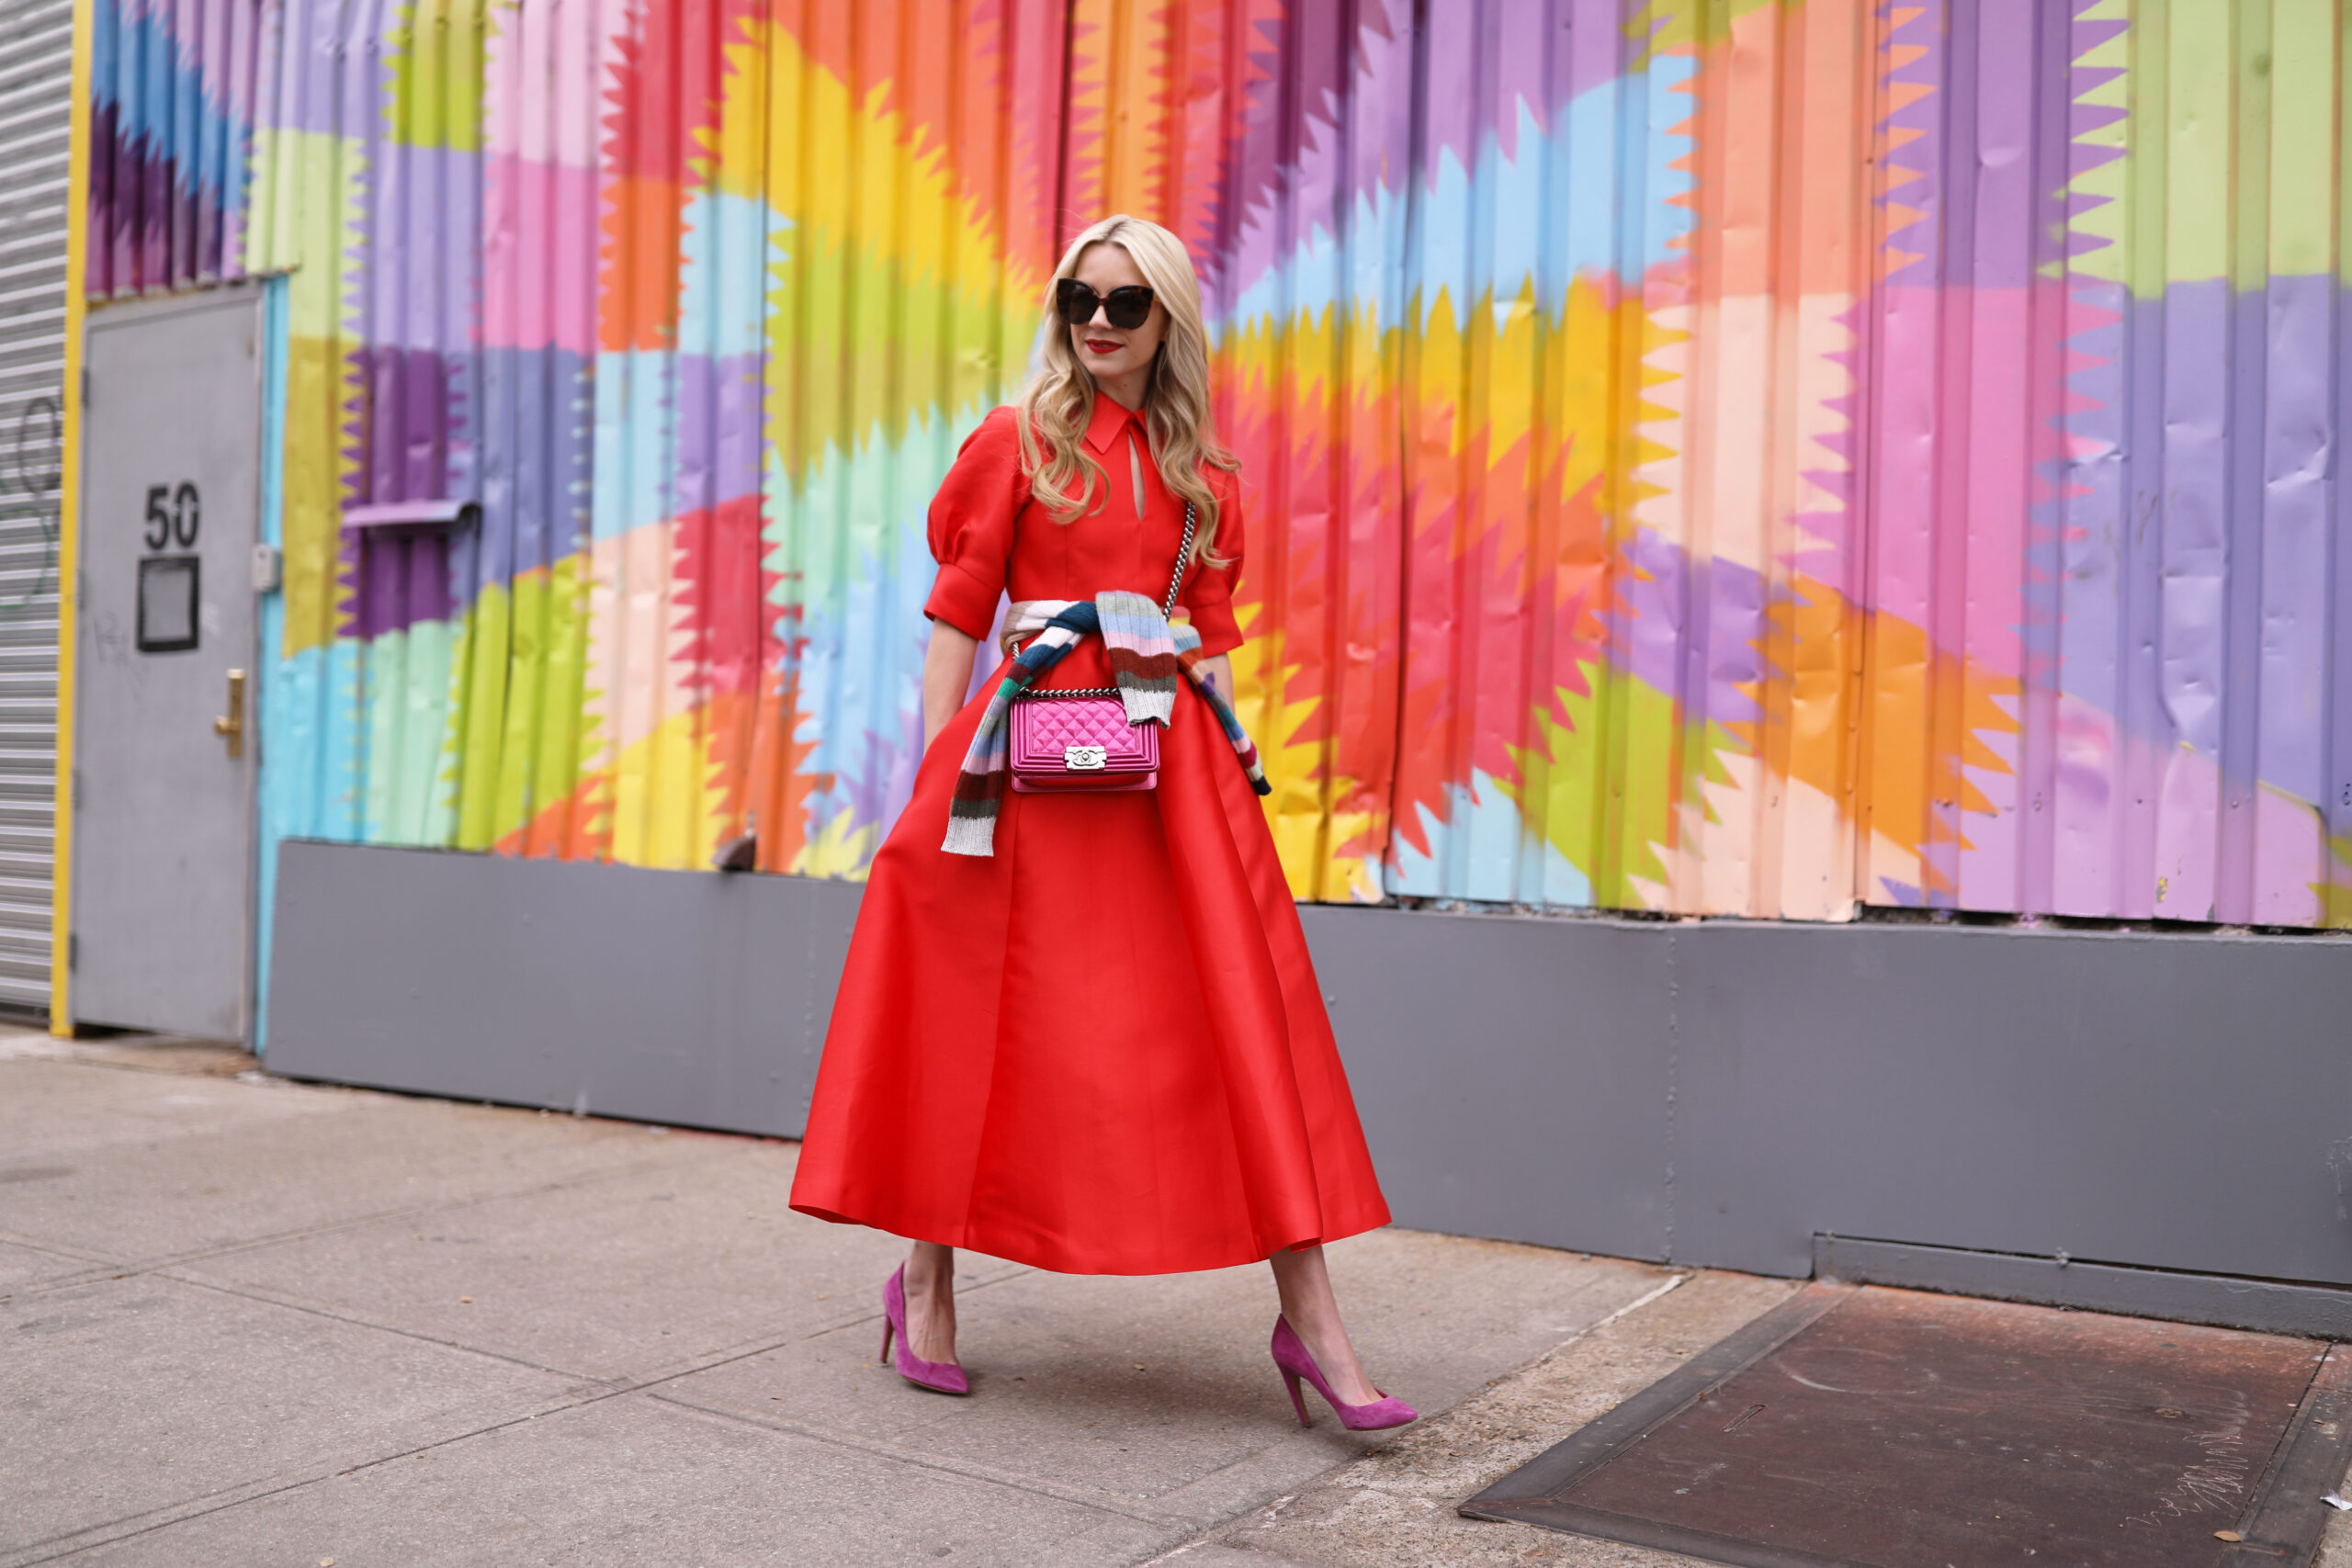 b05c98506121 ... red-dress-chanel-bag-pink-holiday-ready-2016- ...